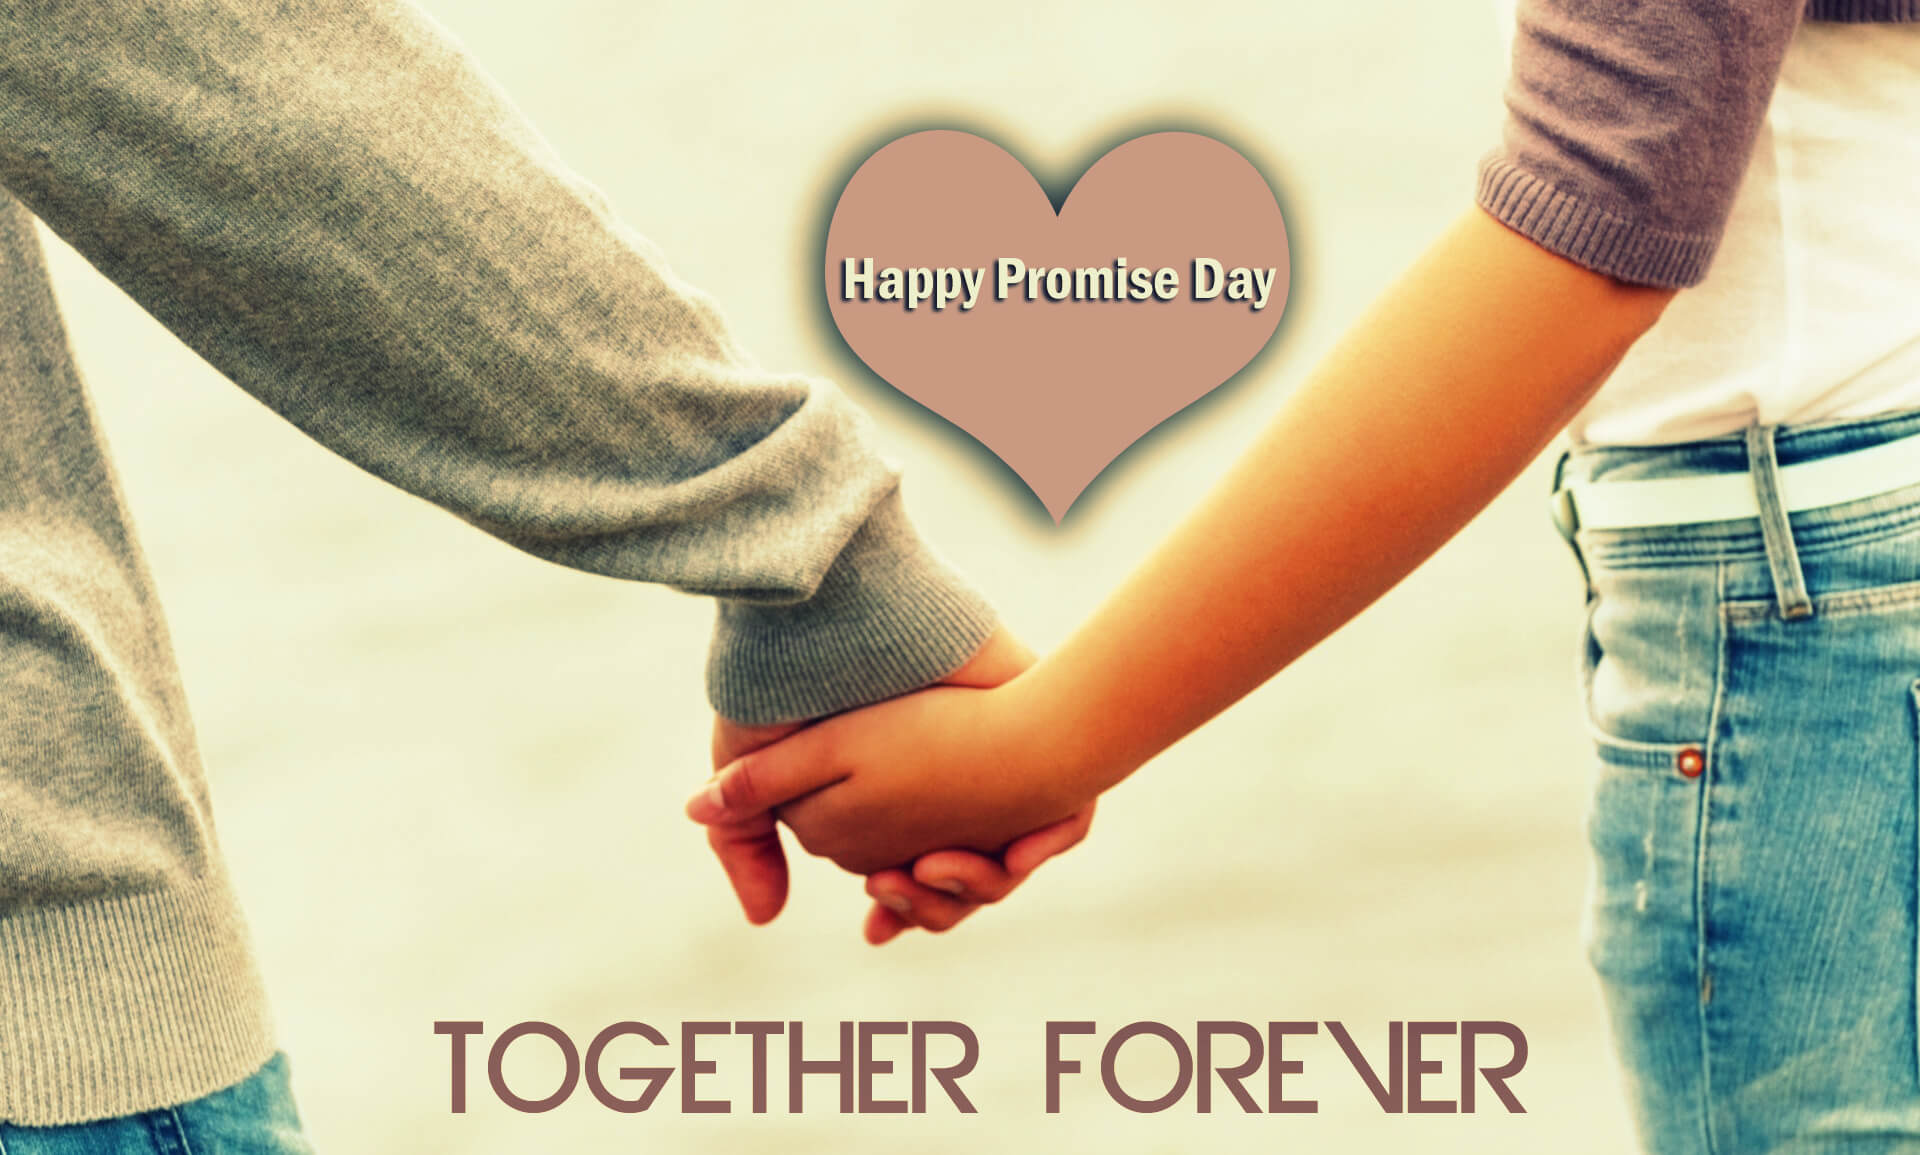 happy promise day wishes love valentine together forever image hd wallpaper